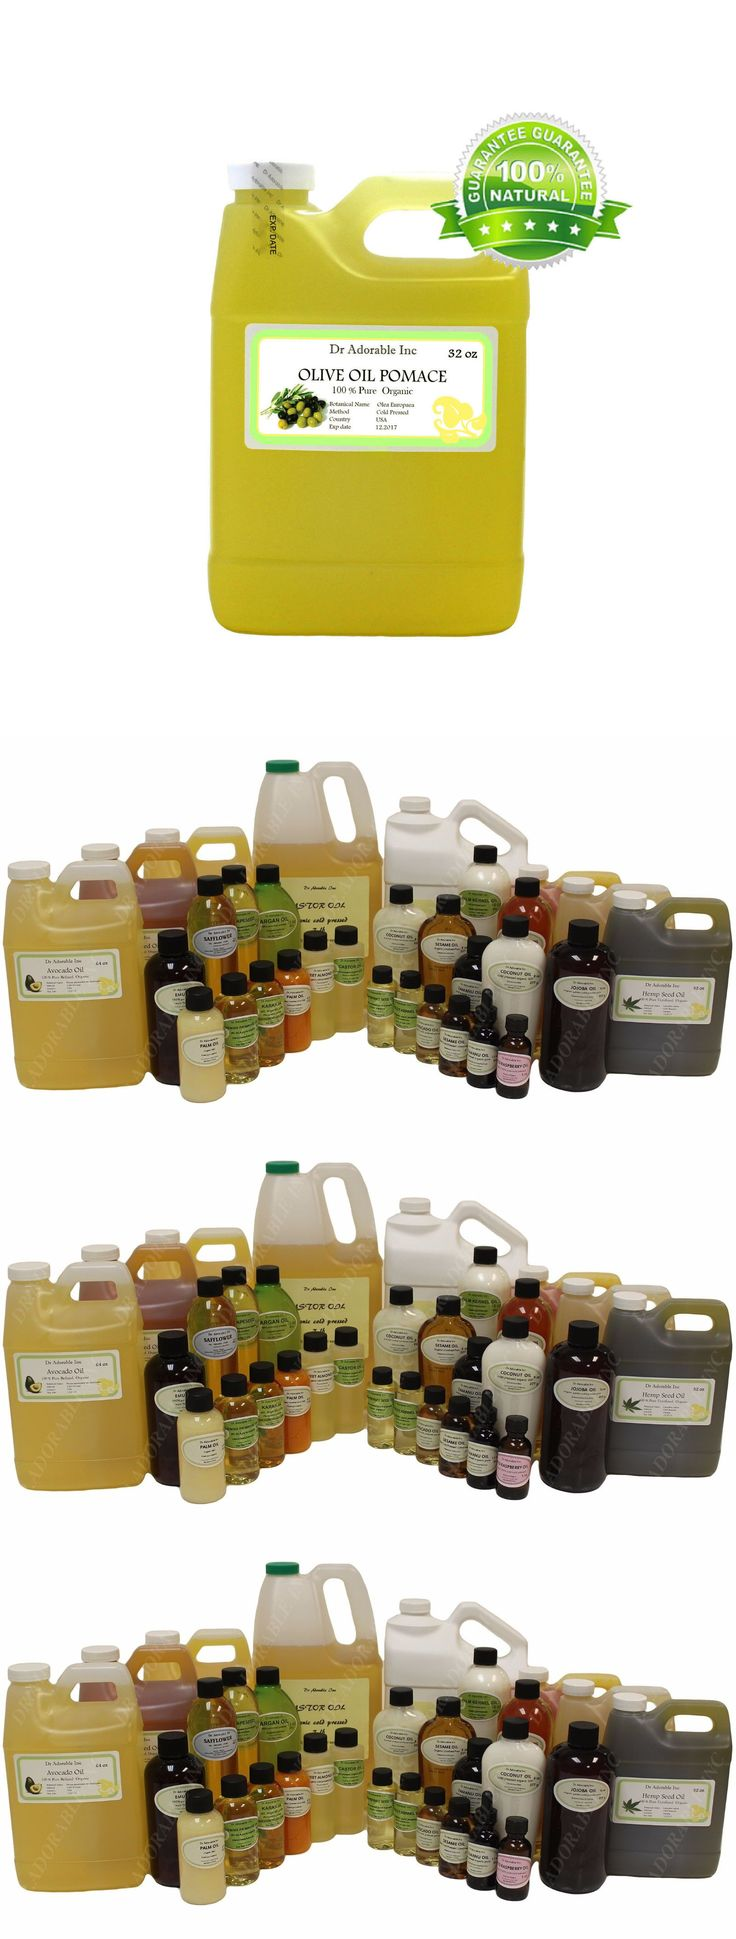 Massage Oils and Lotions: Pure Pomace Olive Oil Organic 2 Oz Up To Gallon Cold Pressed Free Shipping!!! -> BUY IT NOW ONLY: $51.99 on eBay!